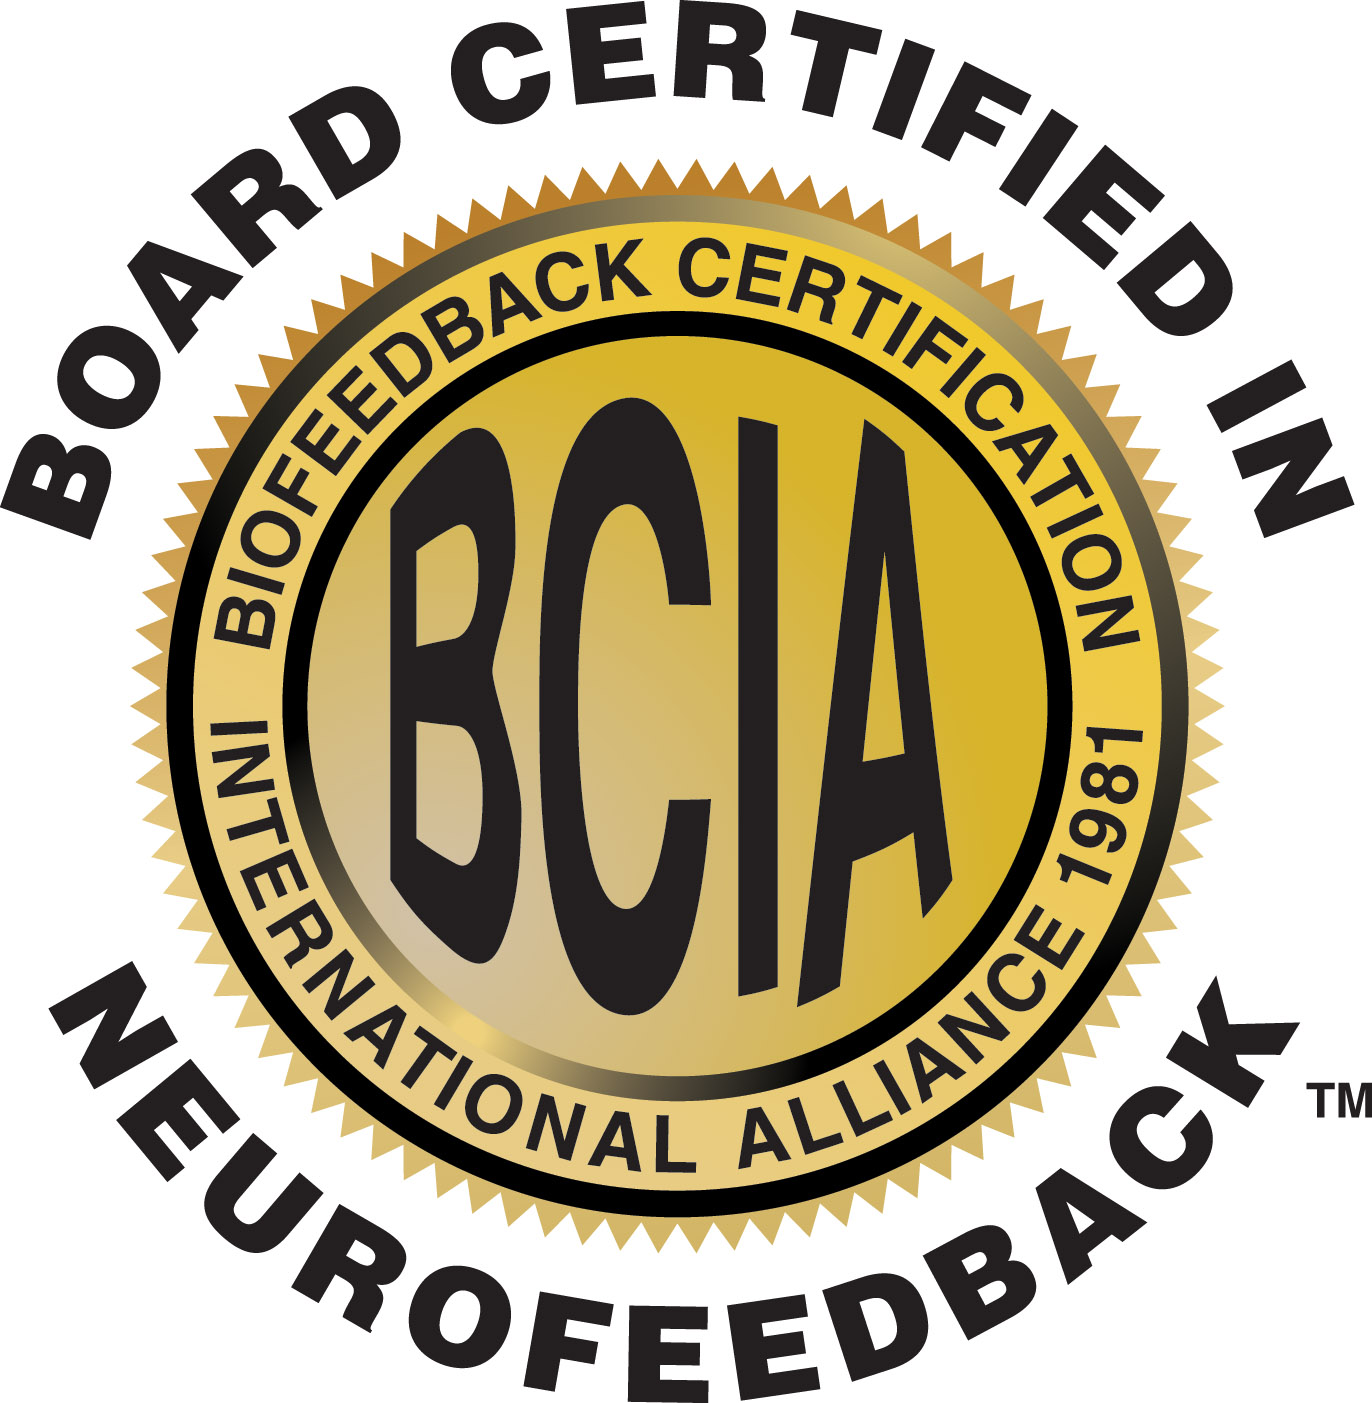 The Biofeedback Certification Alliance  ensures that biofeedback practitioners meet stringent educational and preparatory standards.